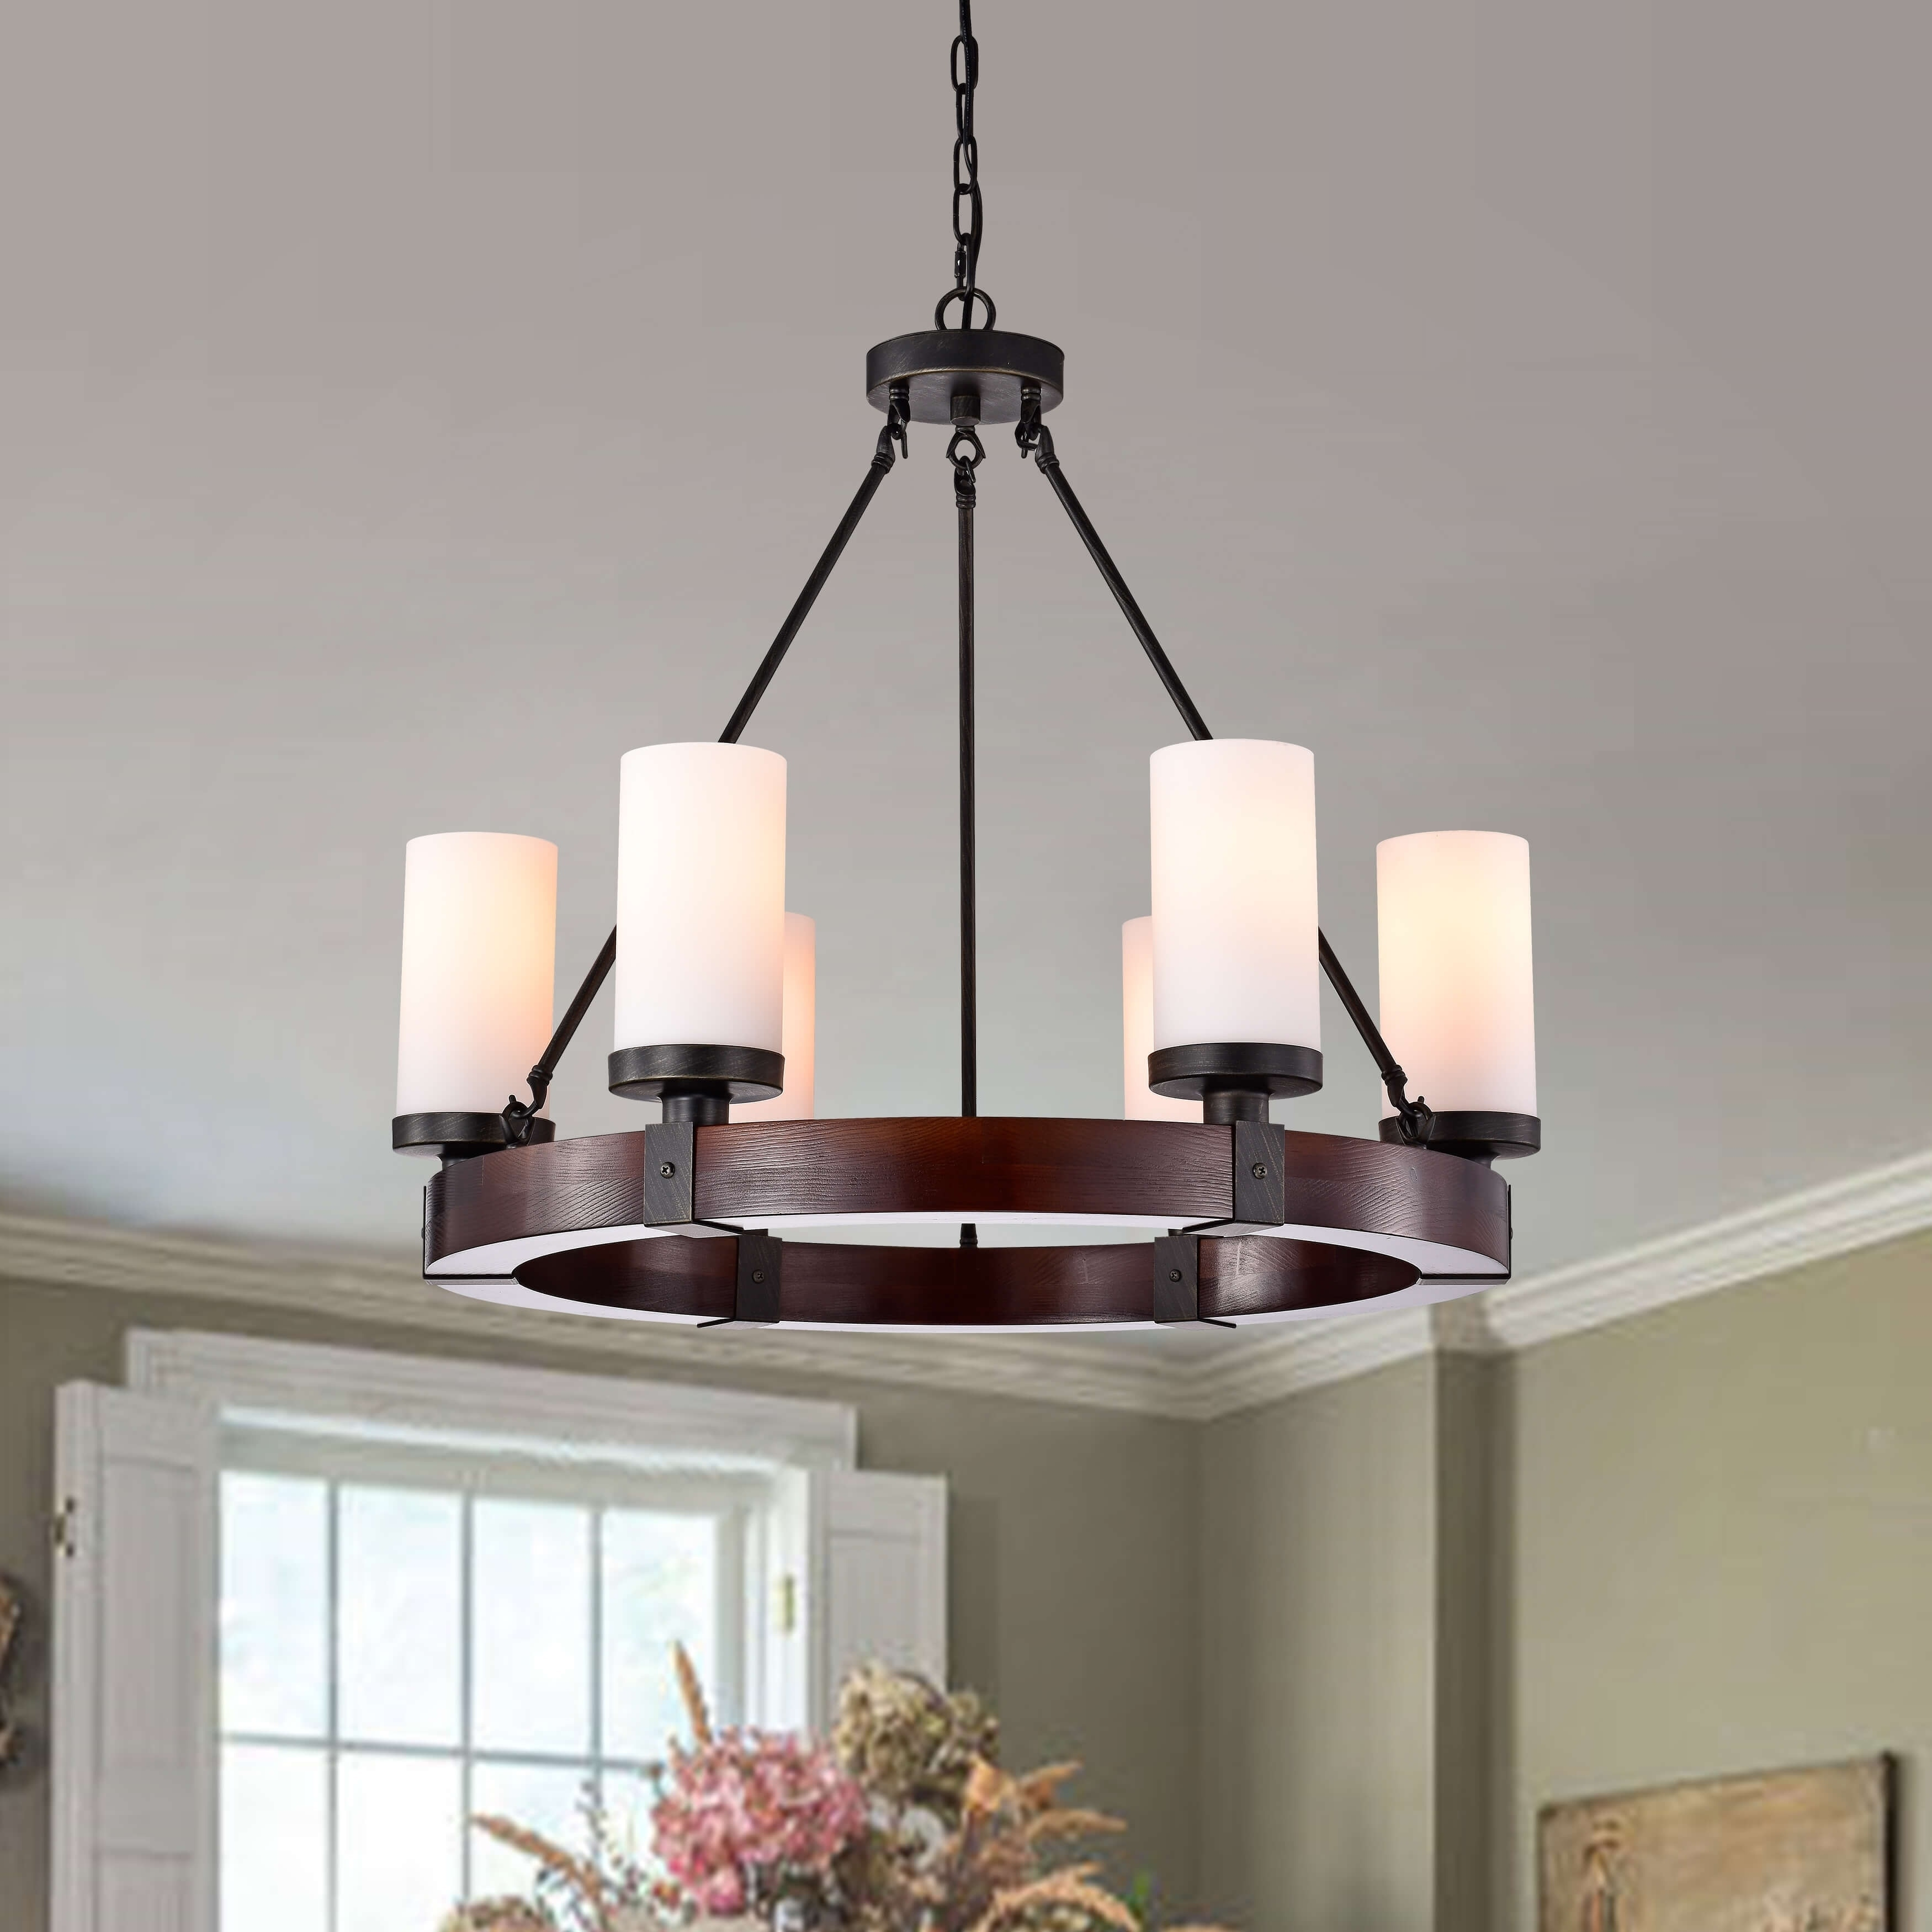 Daniela Antique Black 6-light Round Wood Chandelier with Frosted Glass (Pine)